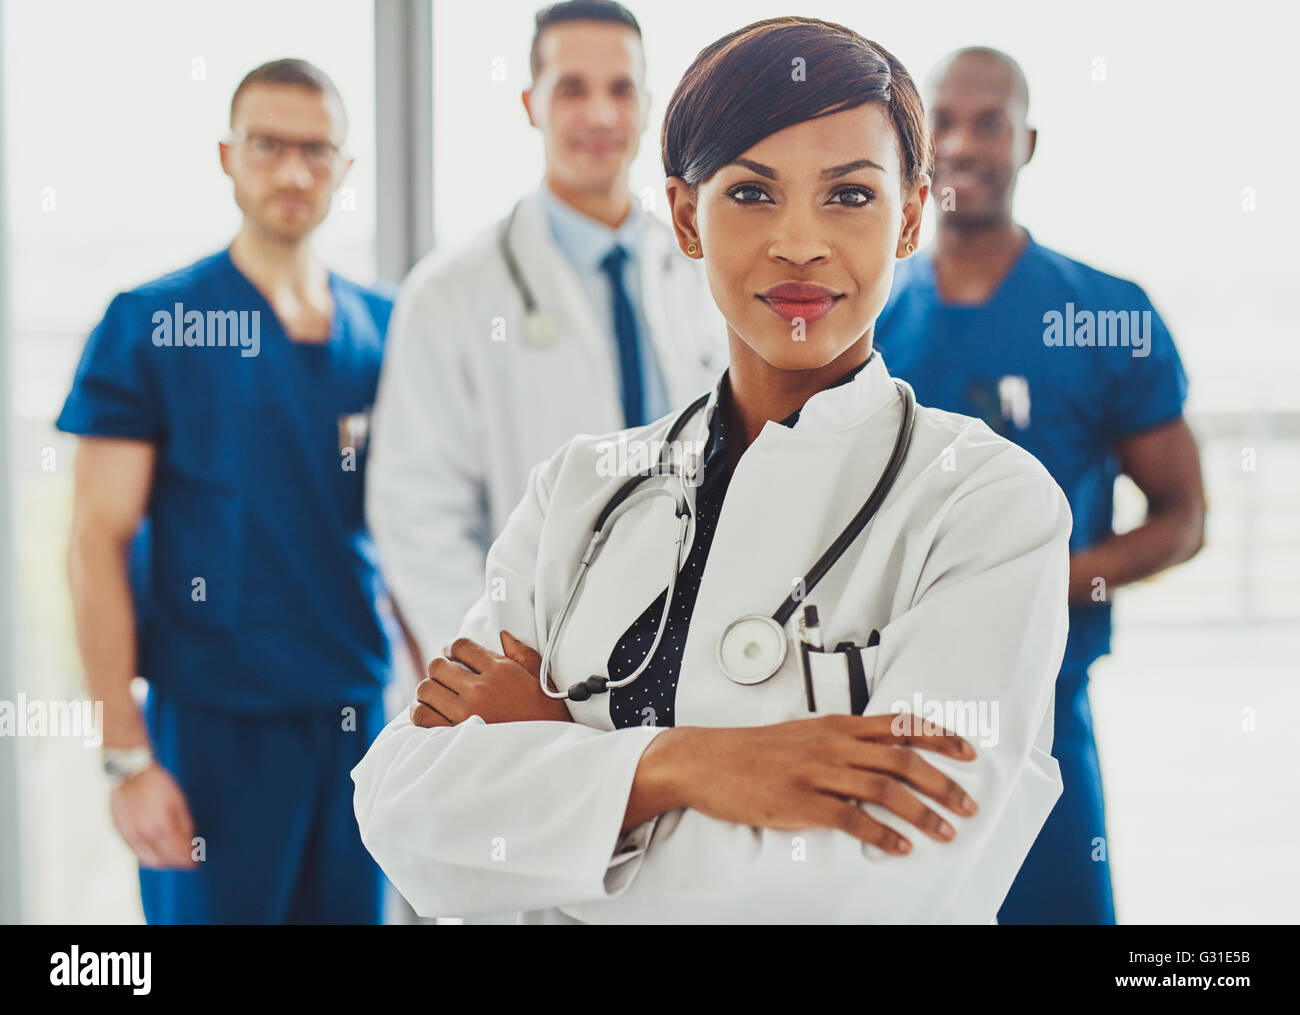 00e0e895ec0 Black female doctor in front of team, looking at camera with medical team  in background